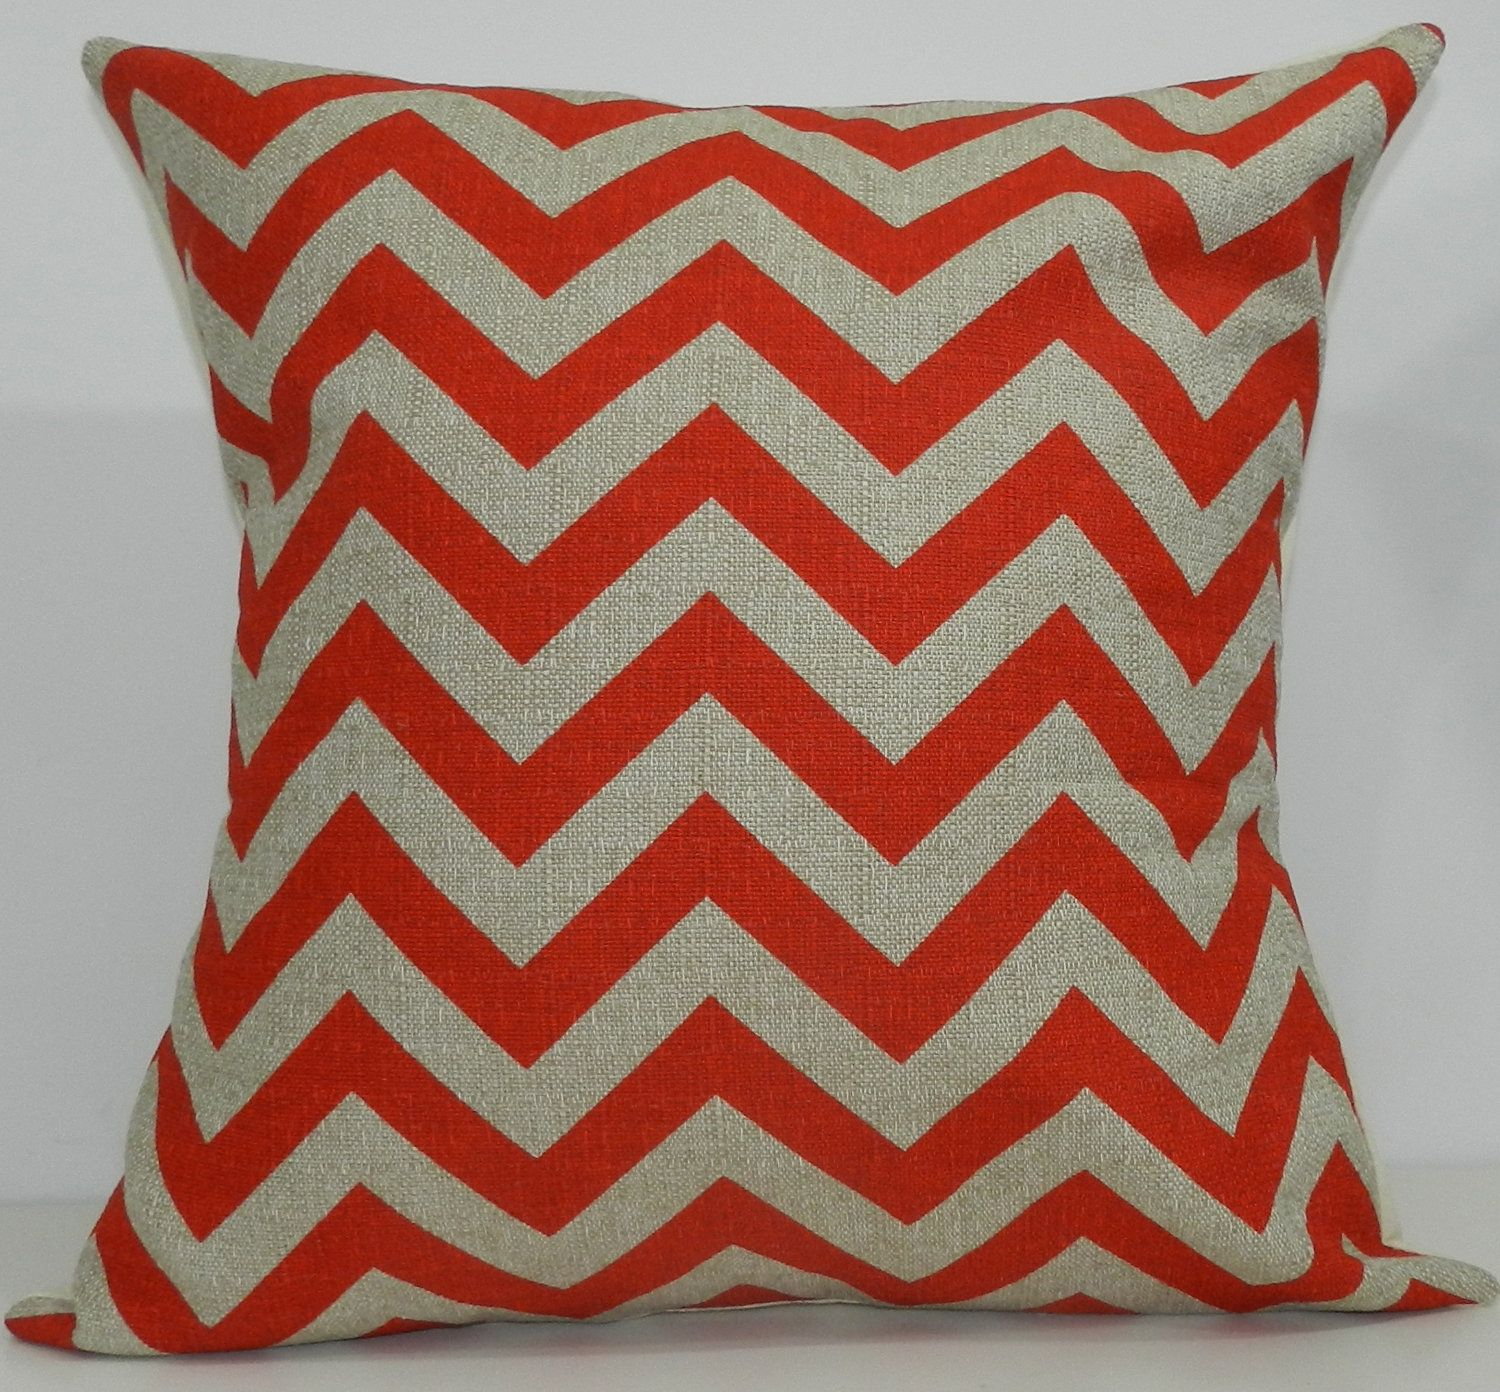 New x inch designer handmade pillow case in bright red and taupe